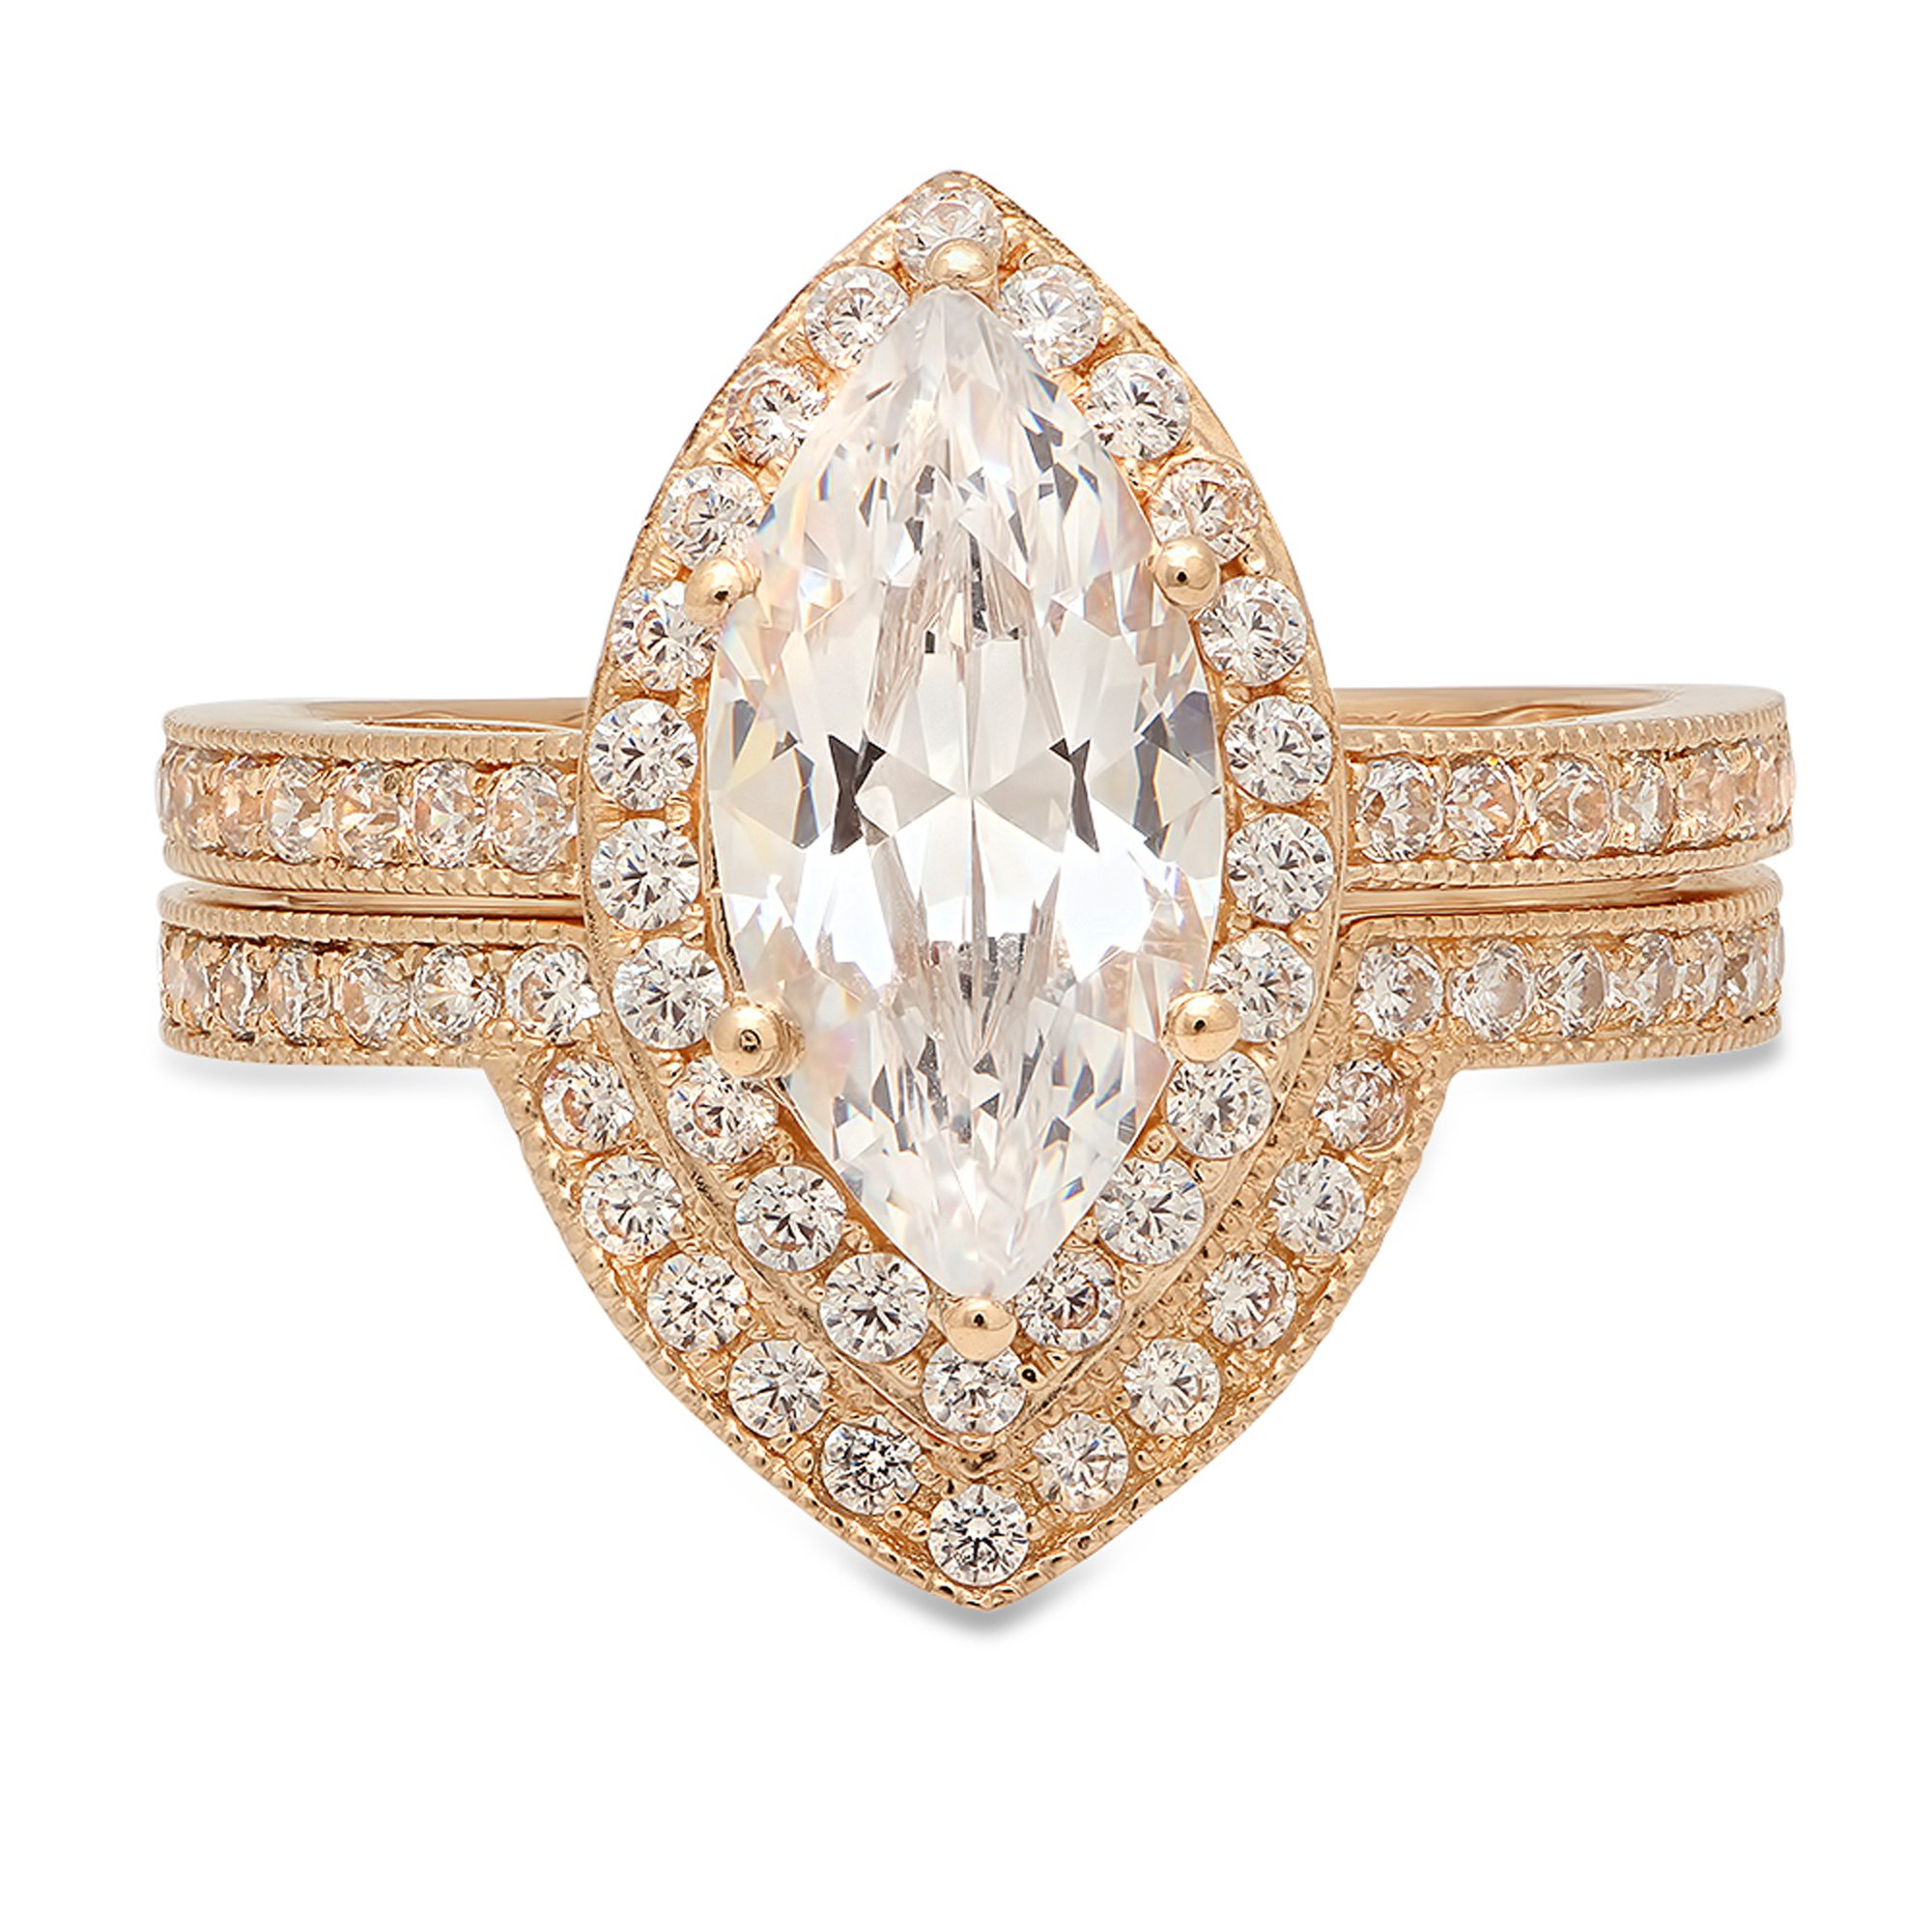 2.26 CT Marquise Cut Solitaire Halo Bridal Engagement Wedding Anniversary Ring band set 14k Yellow Gold, Size 4.5 Clara Pucci